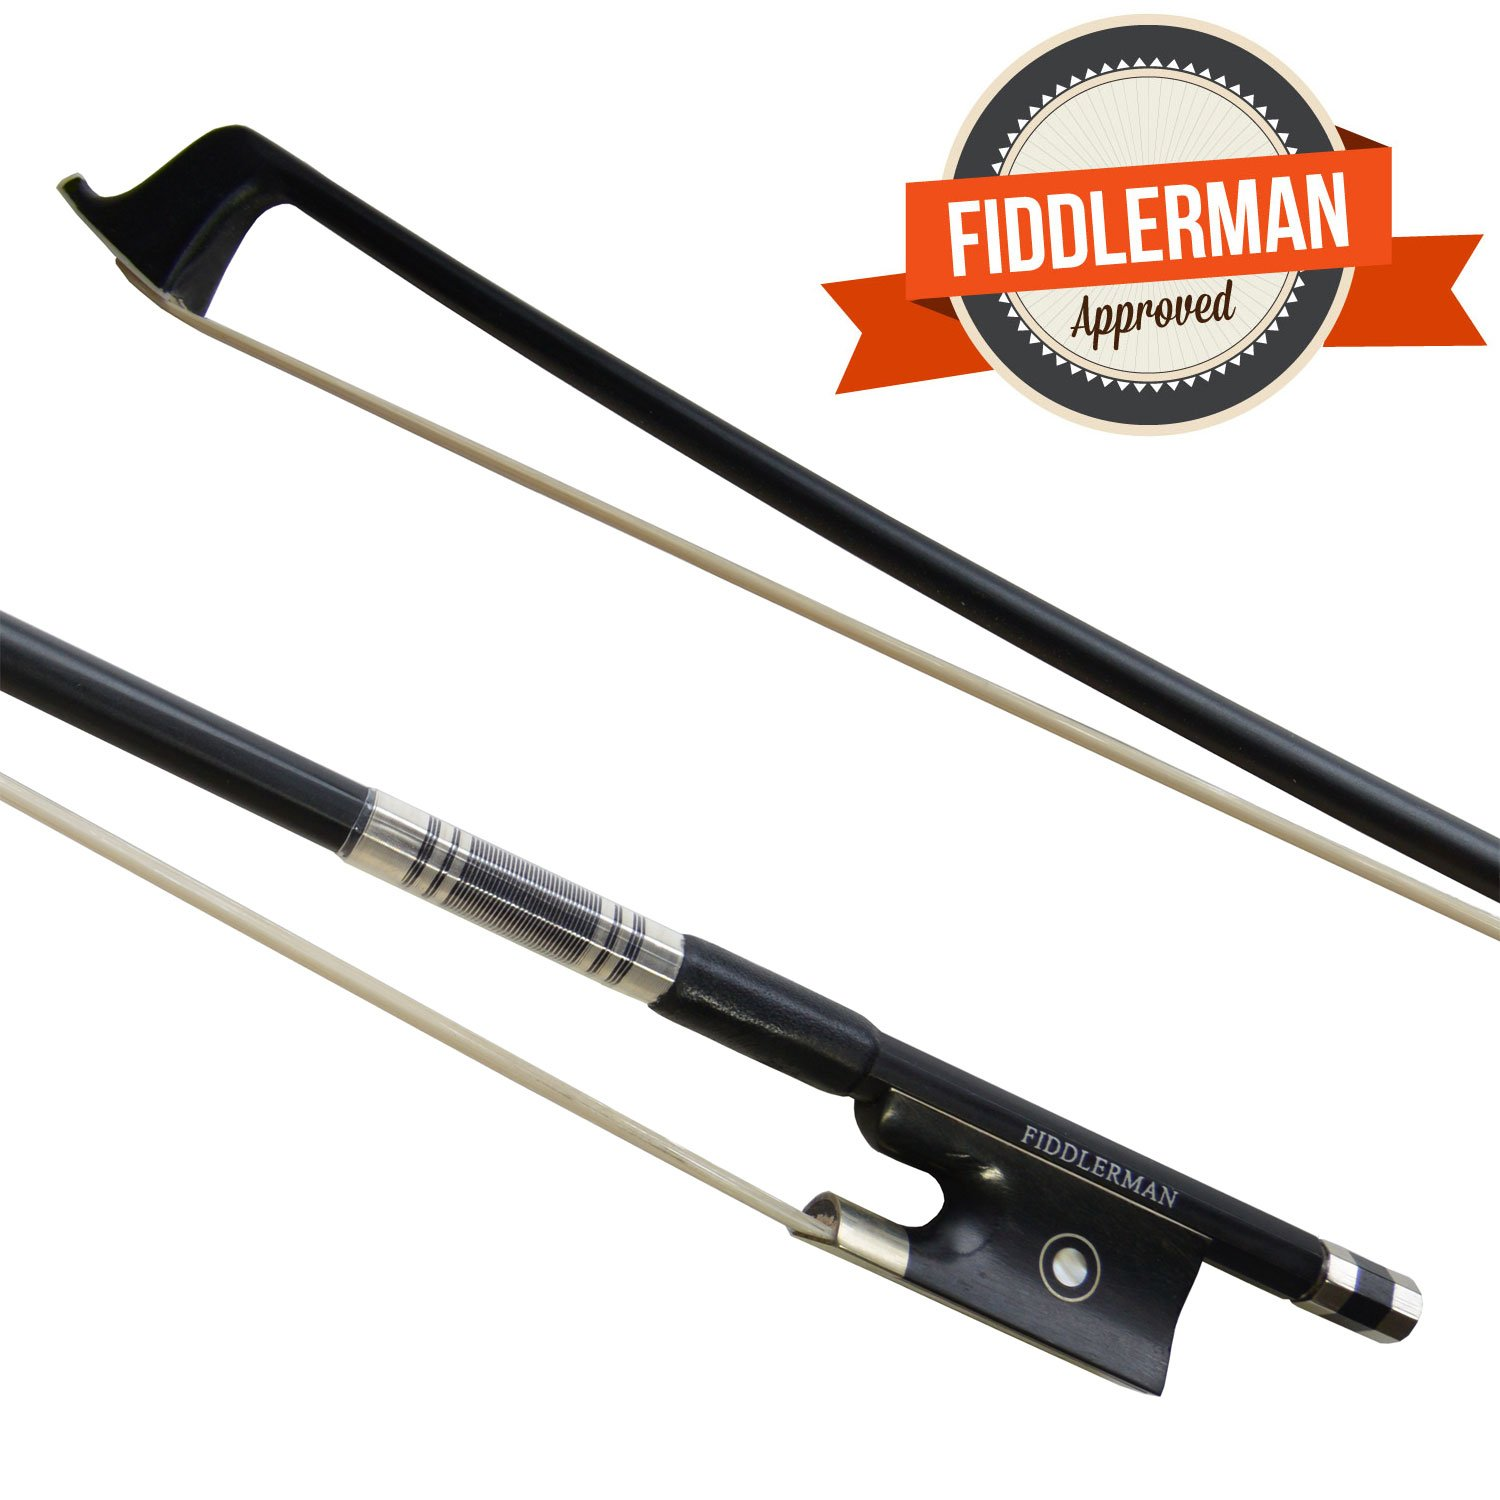 Top 15 Best Violin Bows Reviews in 2020 Should You Consider 3